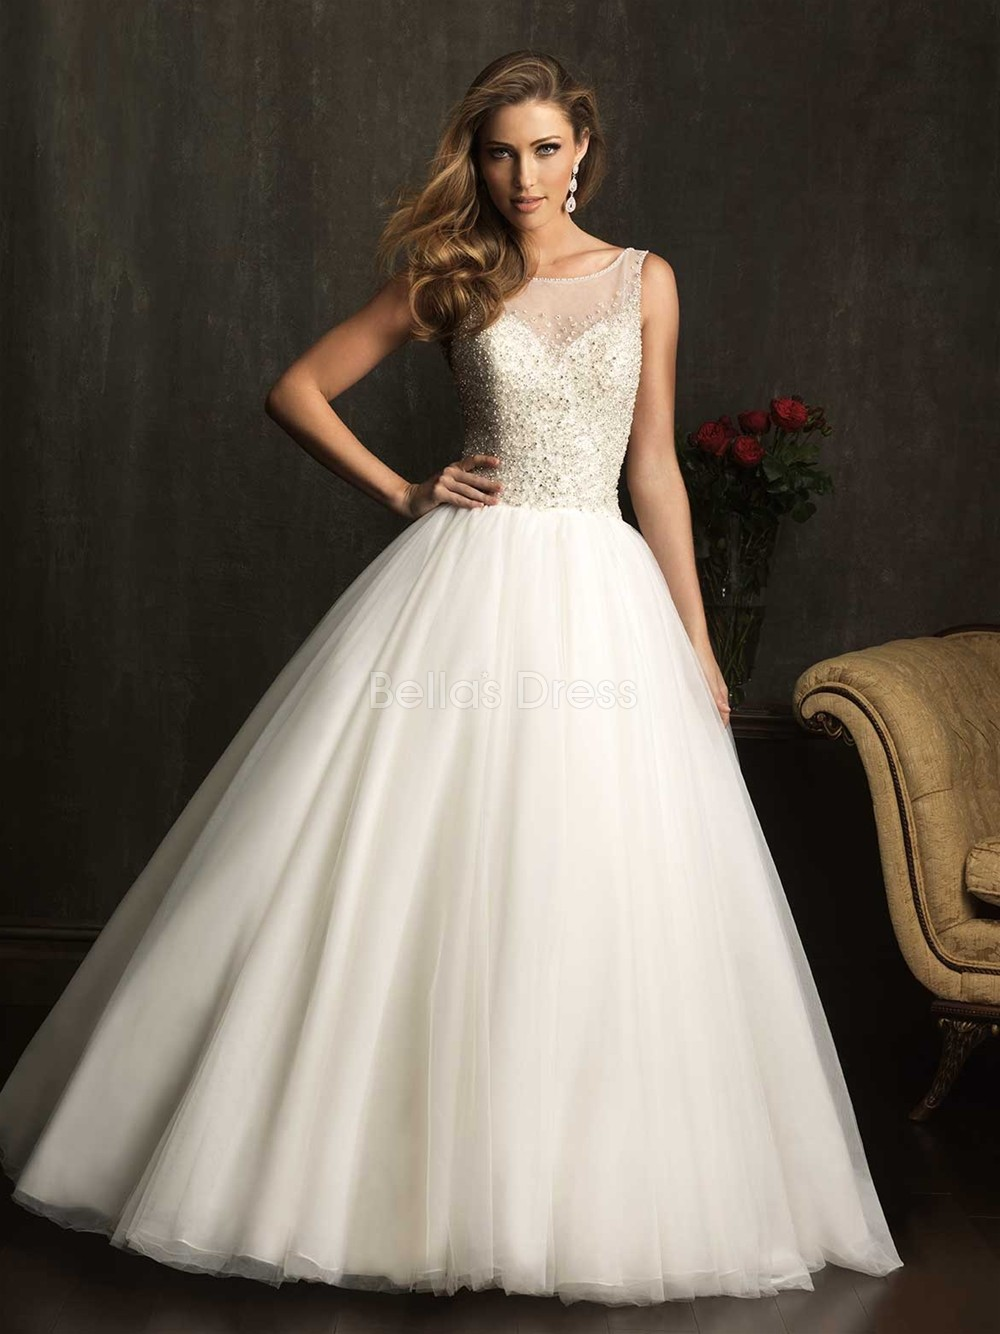 Vintage ball gown wedding dresses for classical bridal for When to buy wedding dress